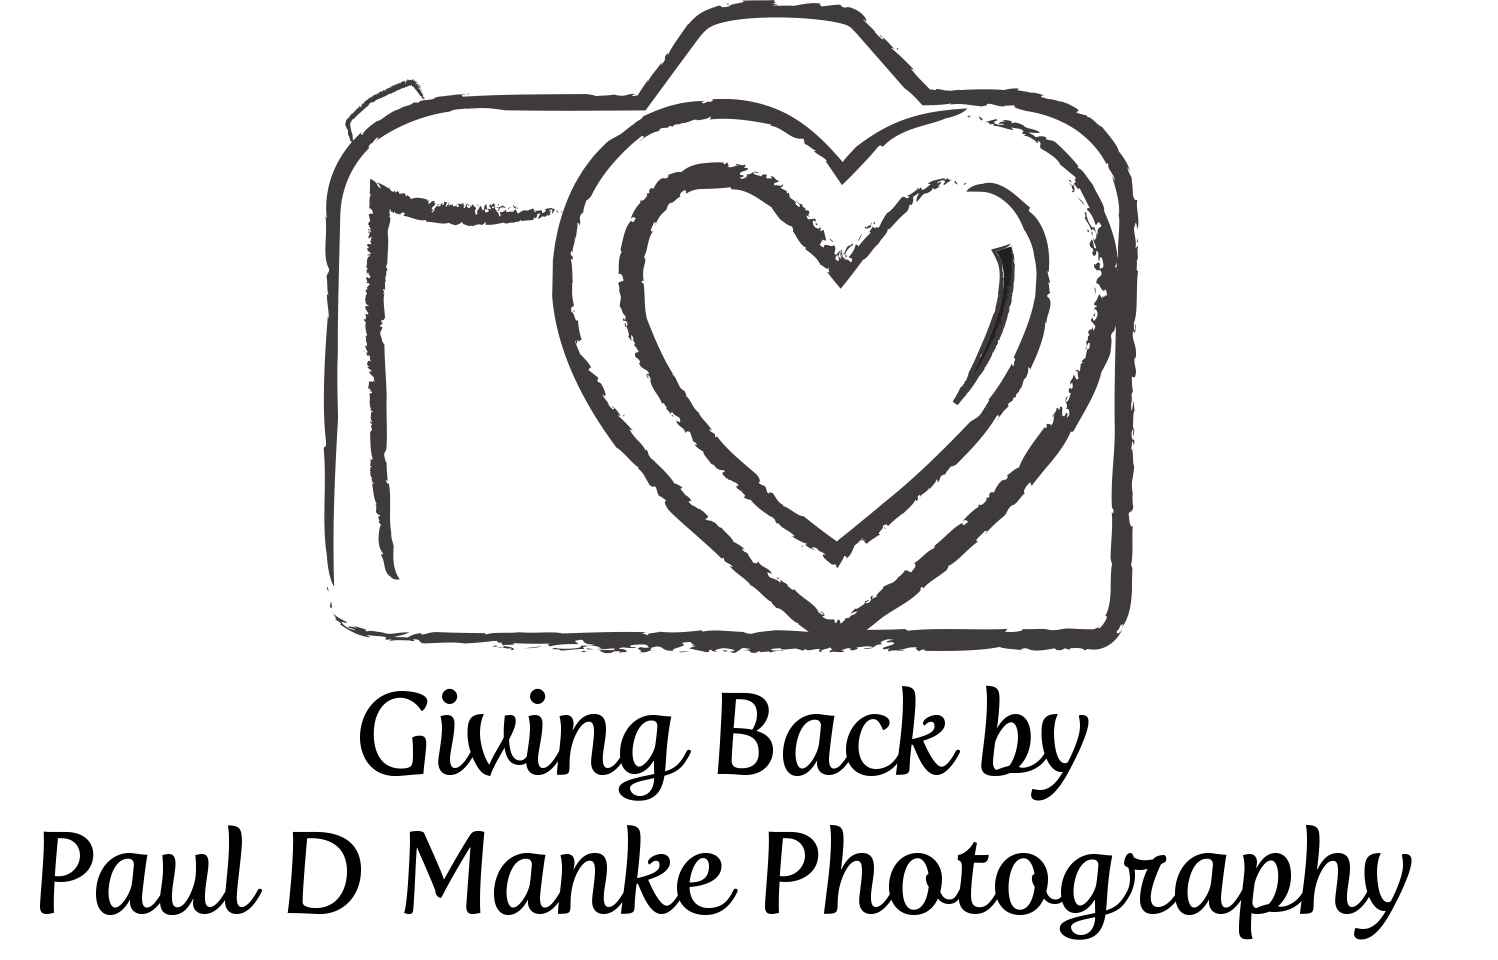 Giving Back by Paul Manke Photography